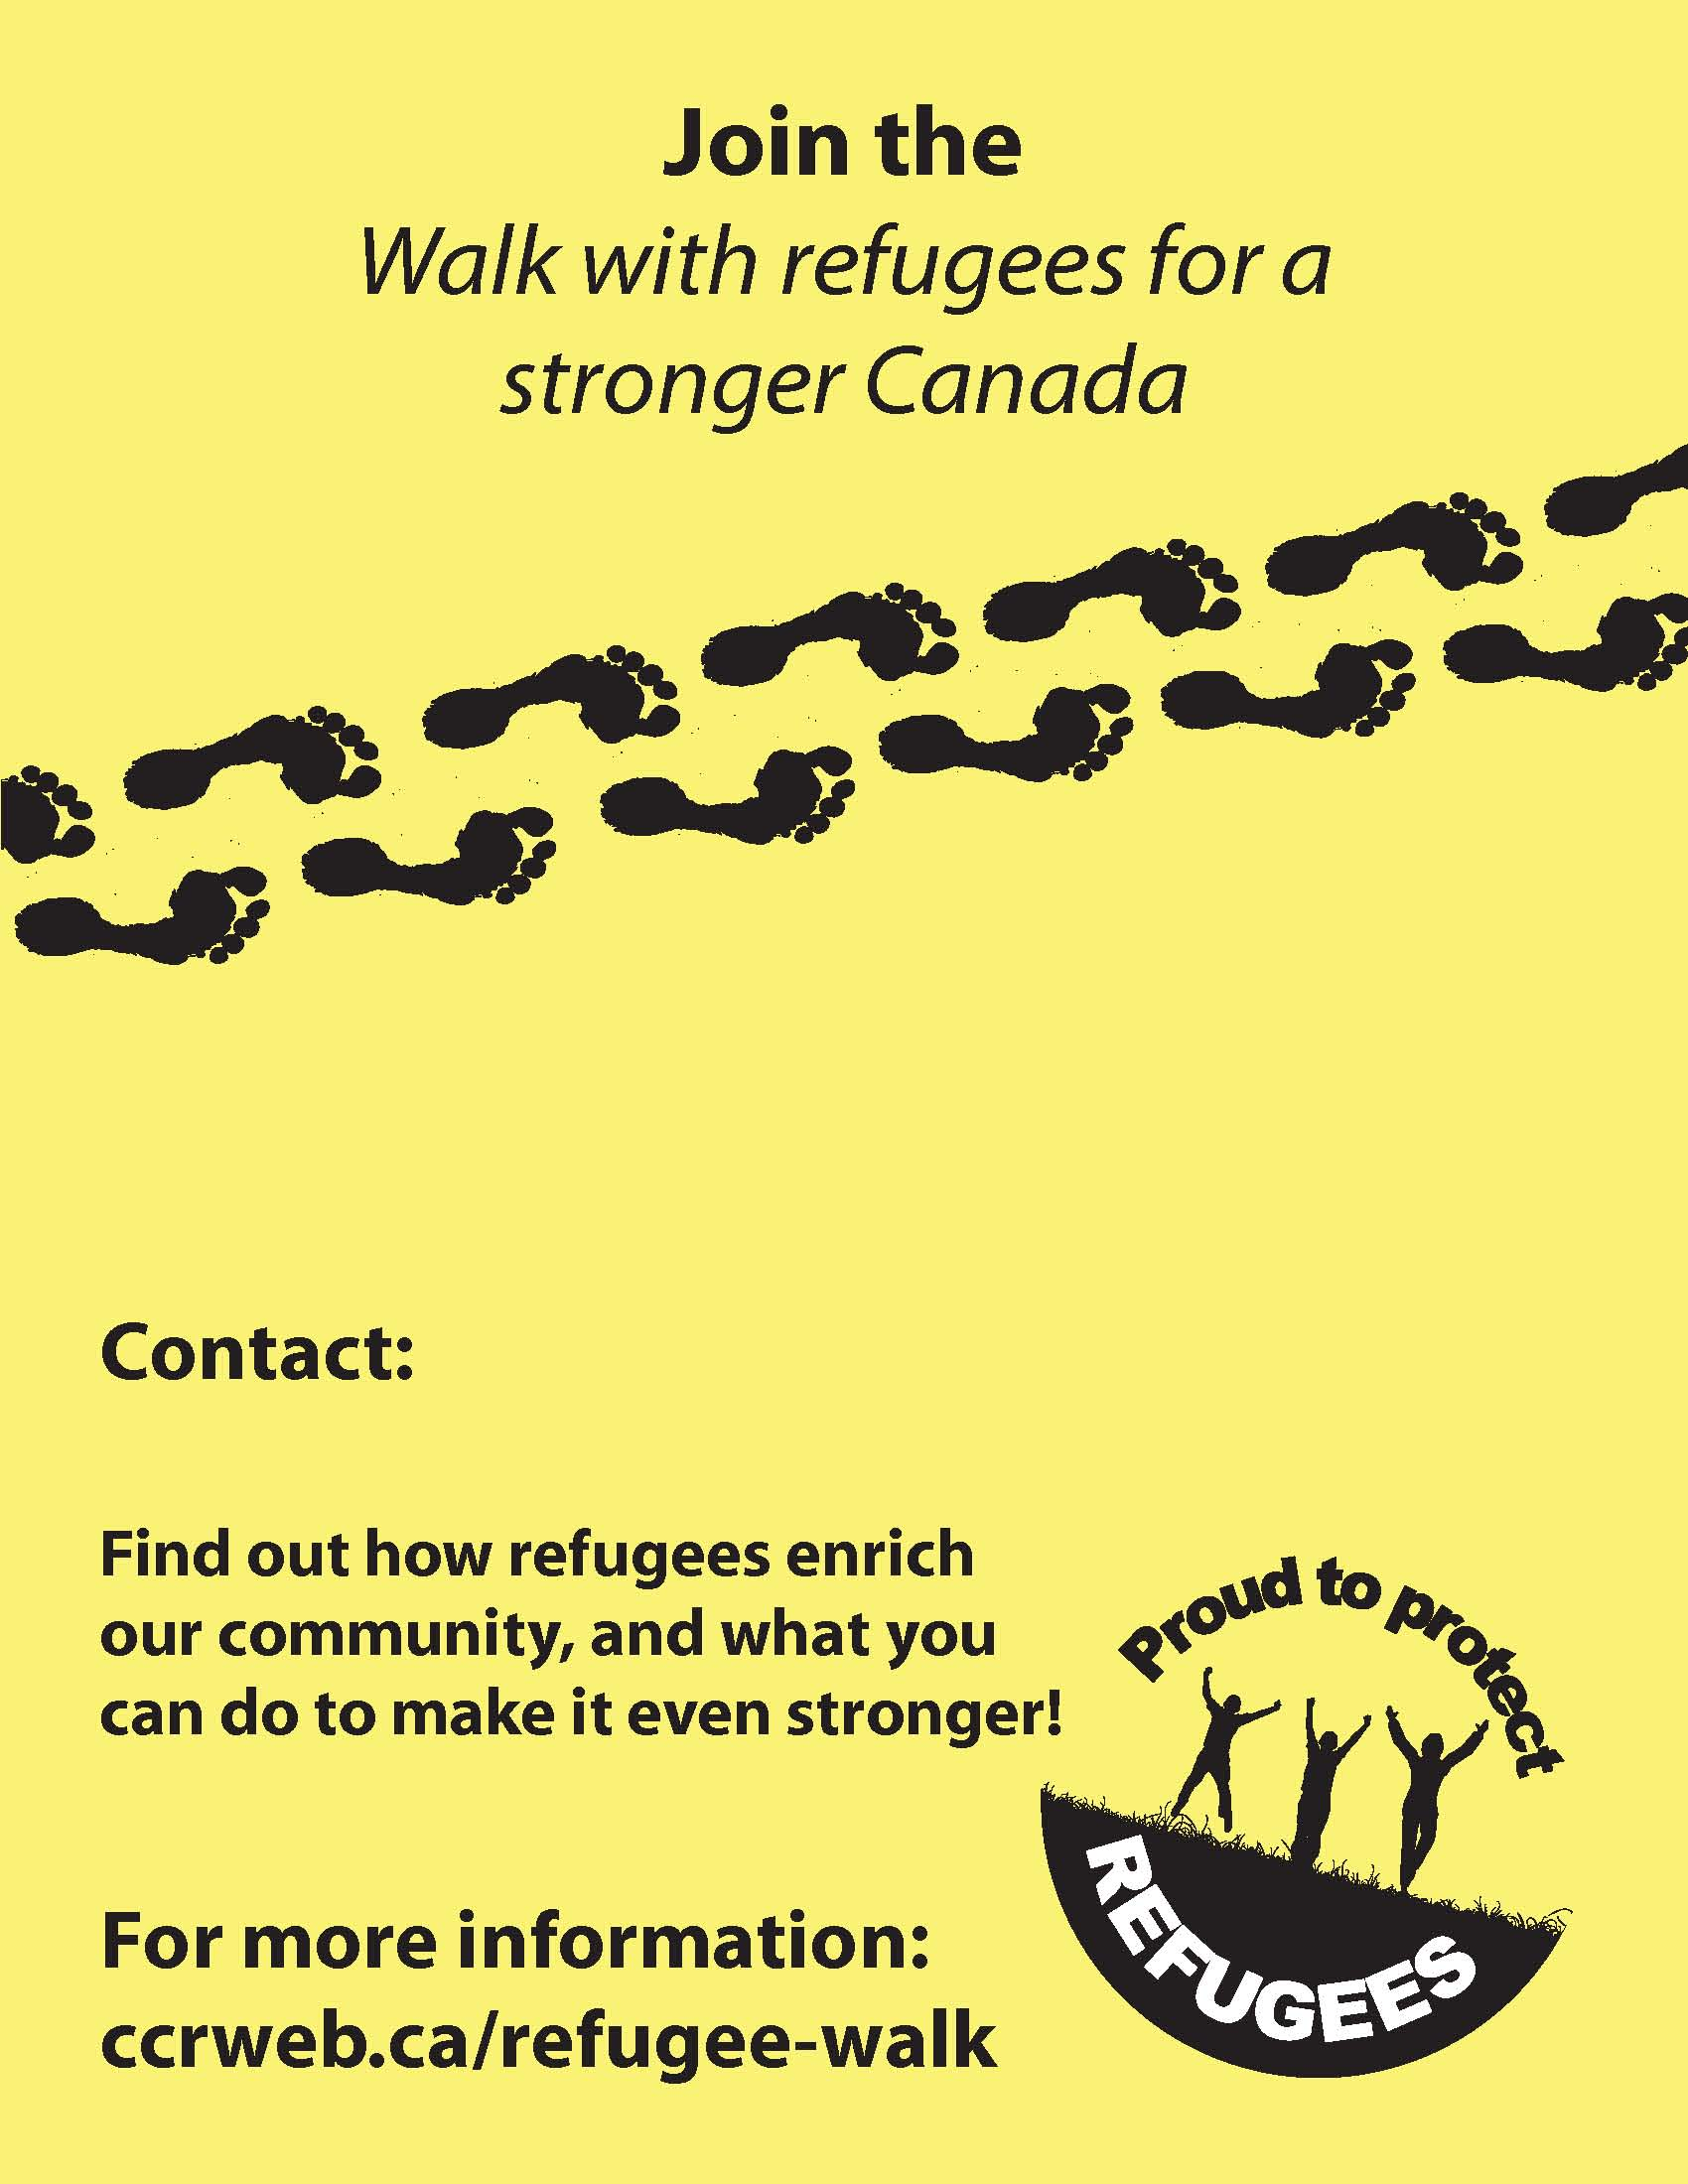 Join the Walk with refugees for a stronger Canada